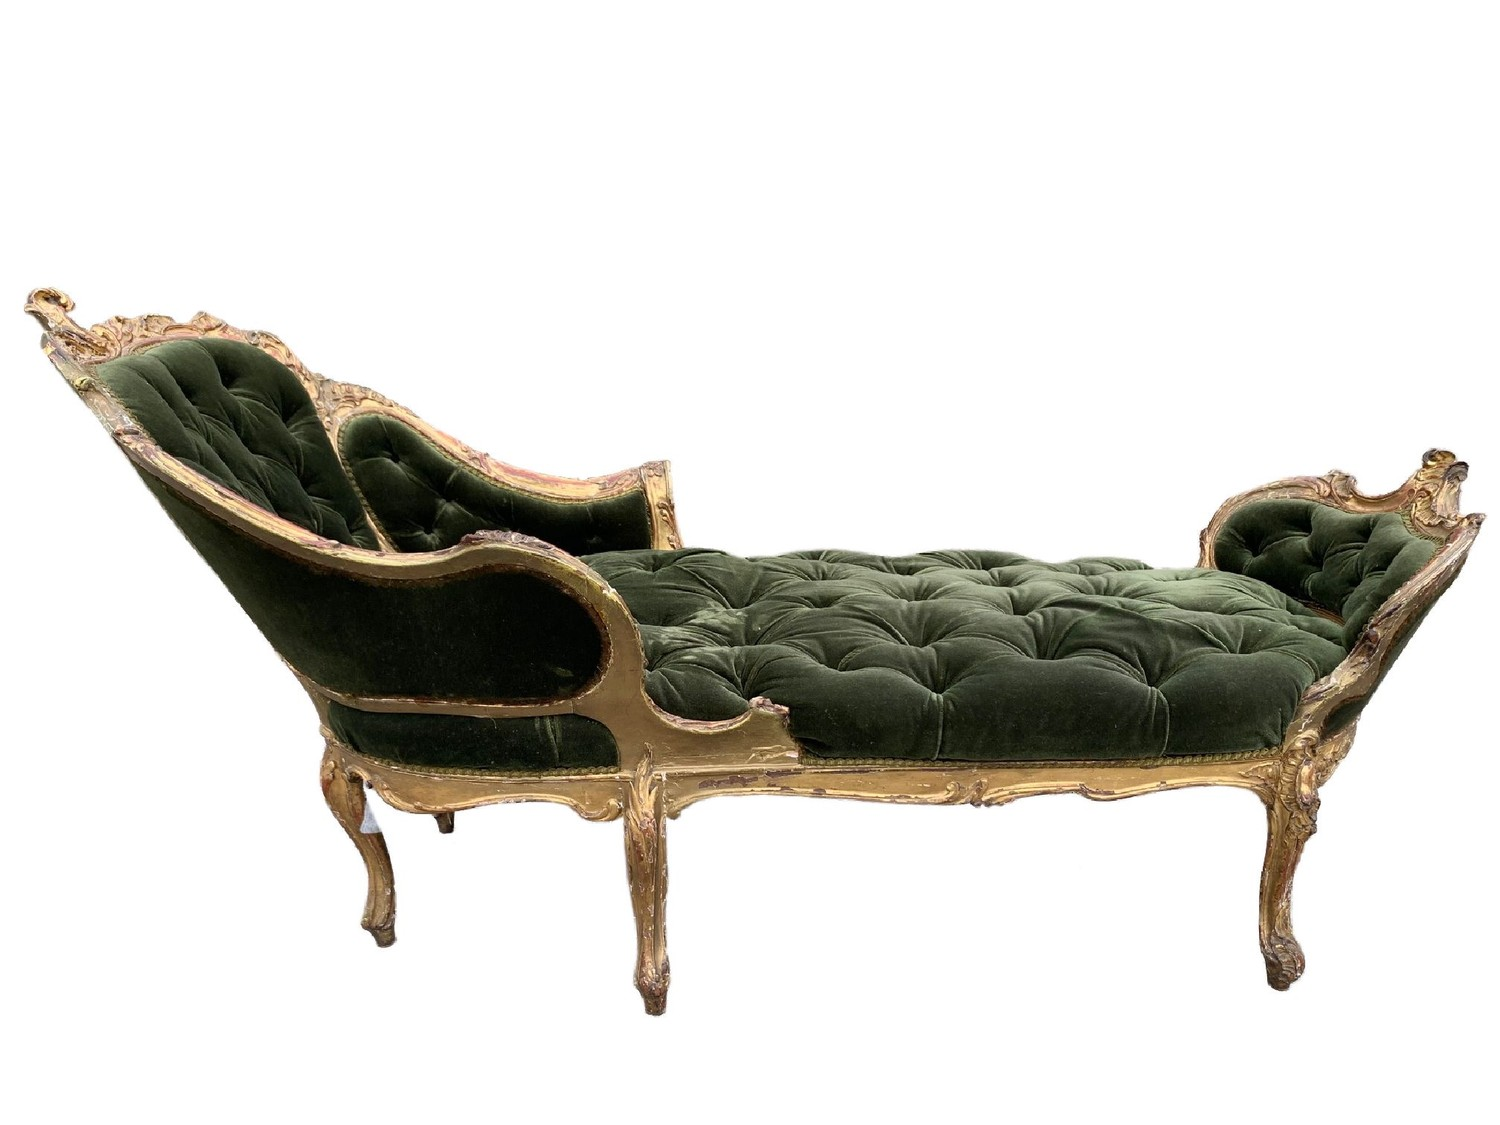 AN 18TH CENTURY FRENCH LOUIS XV ROCOCO CARVED GILTWOOD DUCHESSE DAYBED With button upholstery, frame - Image 2 of 8